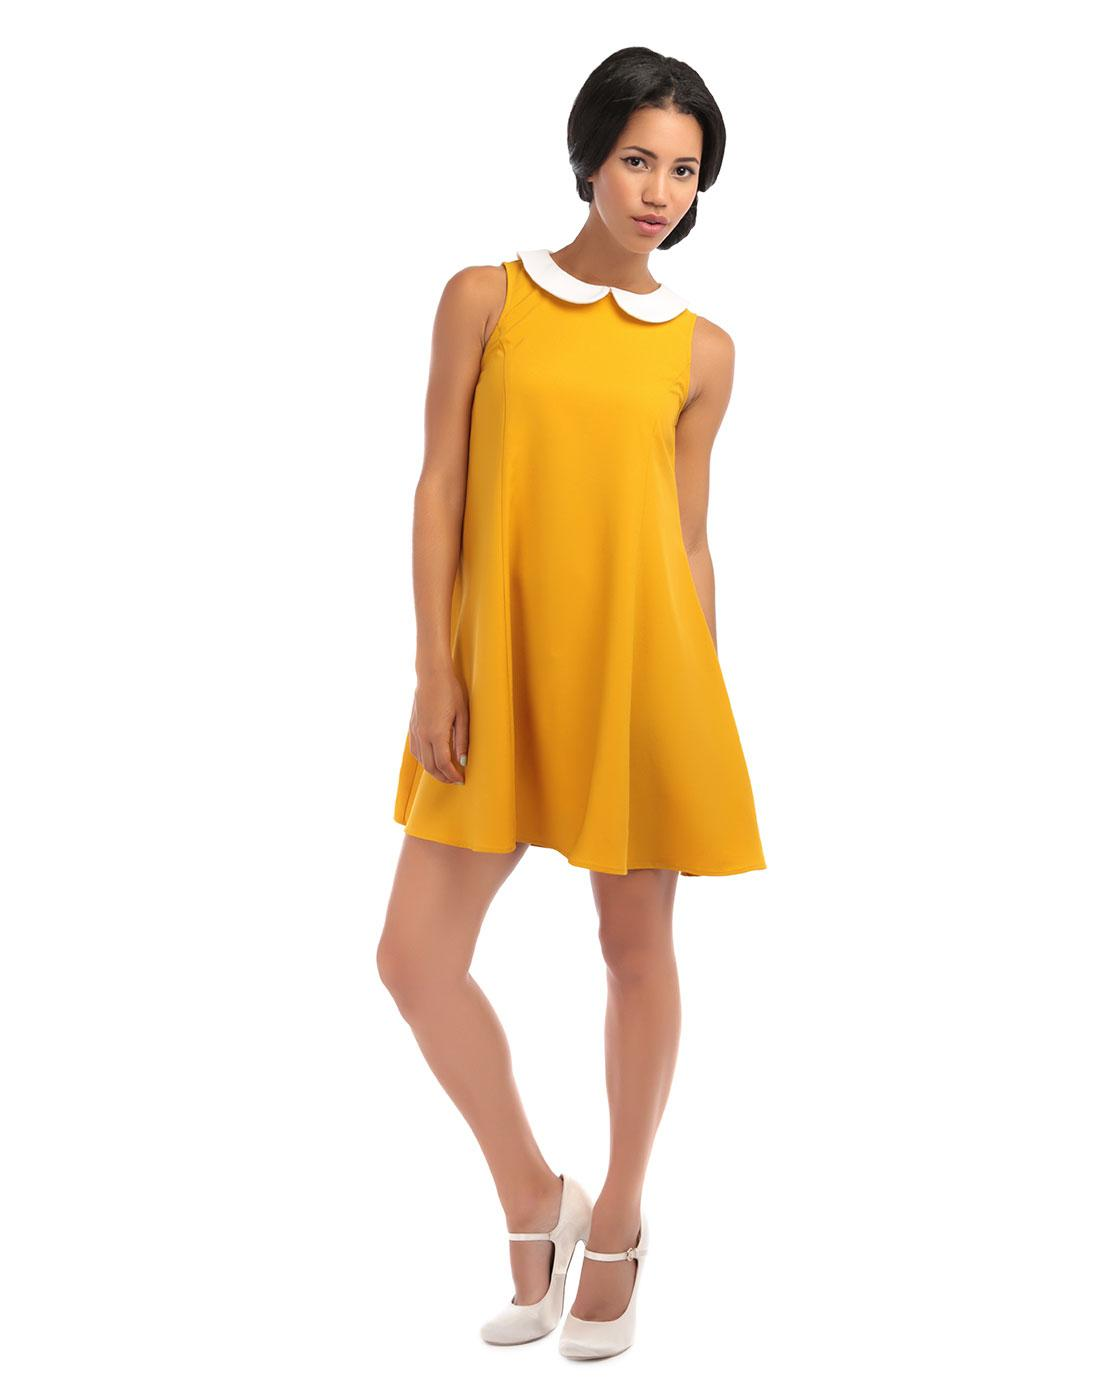 Nia BRIGHT & BEAUTIFUL Retro Mod Baby Doll Dress